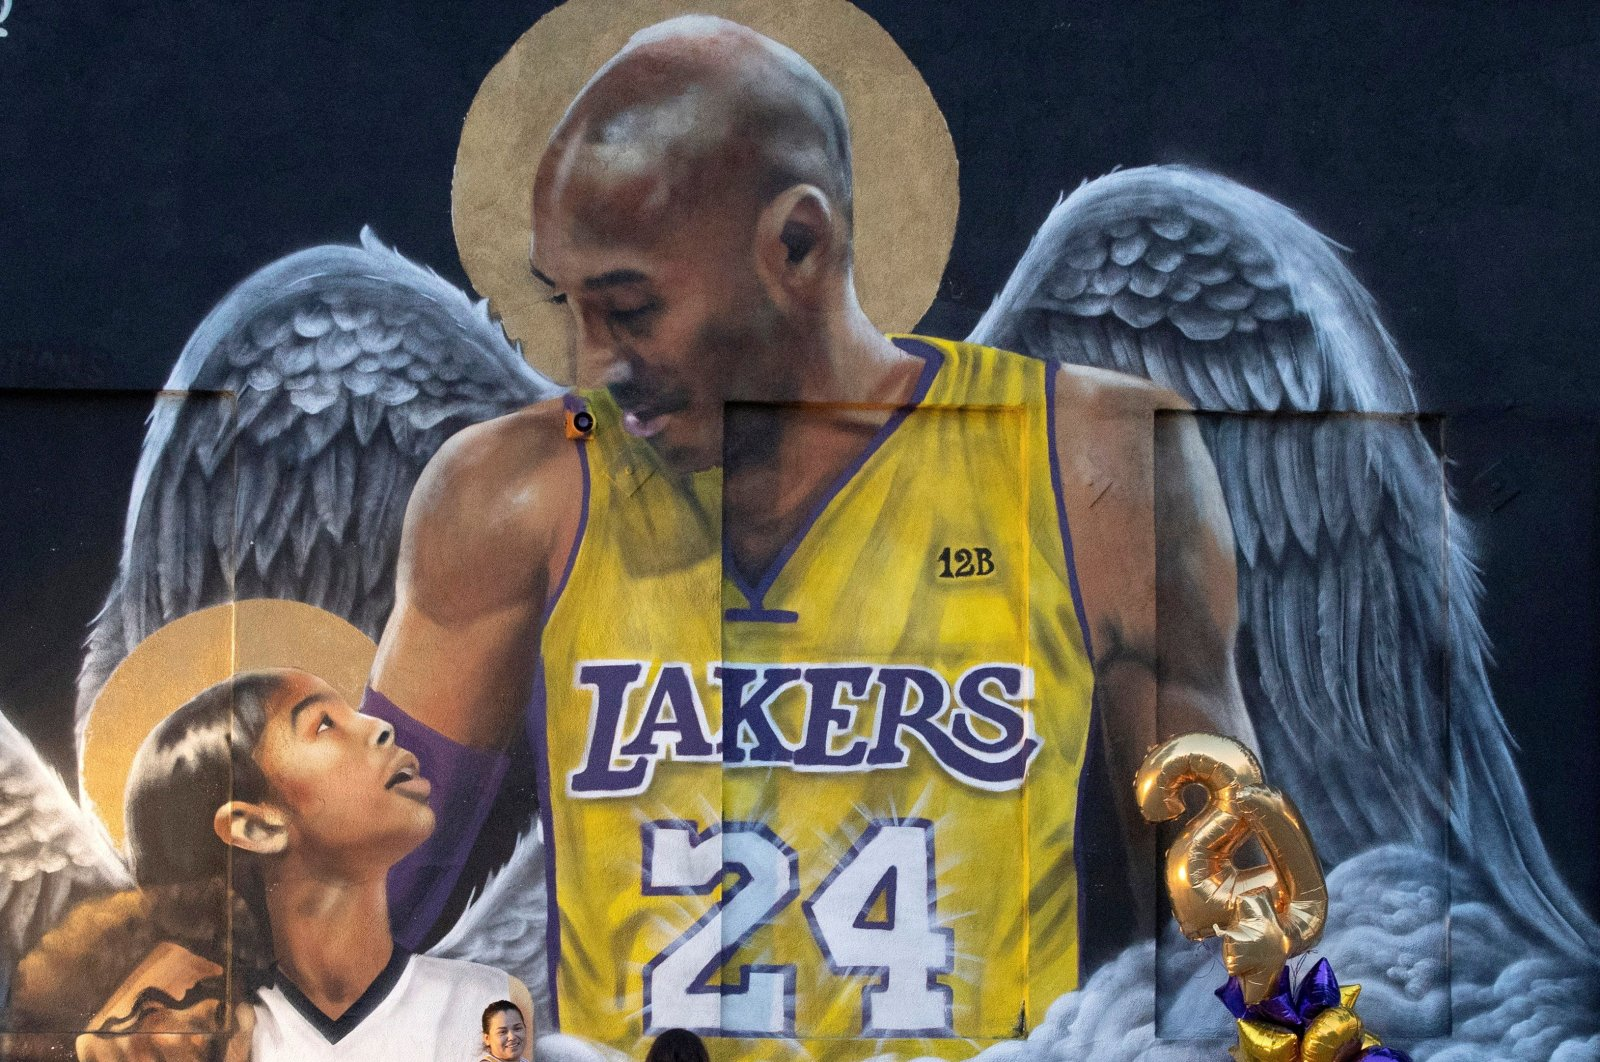 A fan poses by a mural of late Kobe Bryant, who perished one year ago alongside his daughter and seven others when their helicopter crashed into a hillside, in Los Angeles, California, U.S., Jan. 26, 2021. (Reuters)